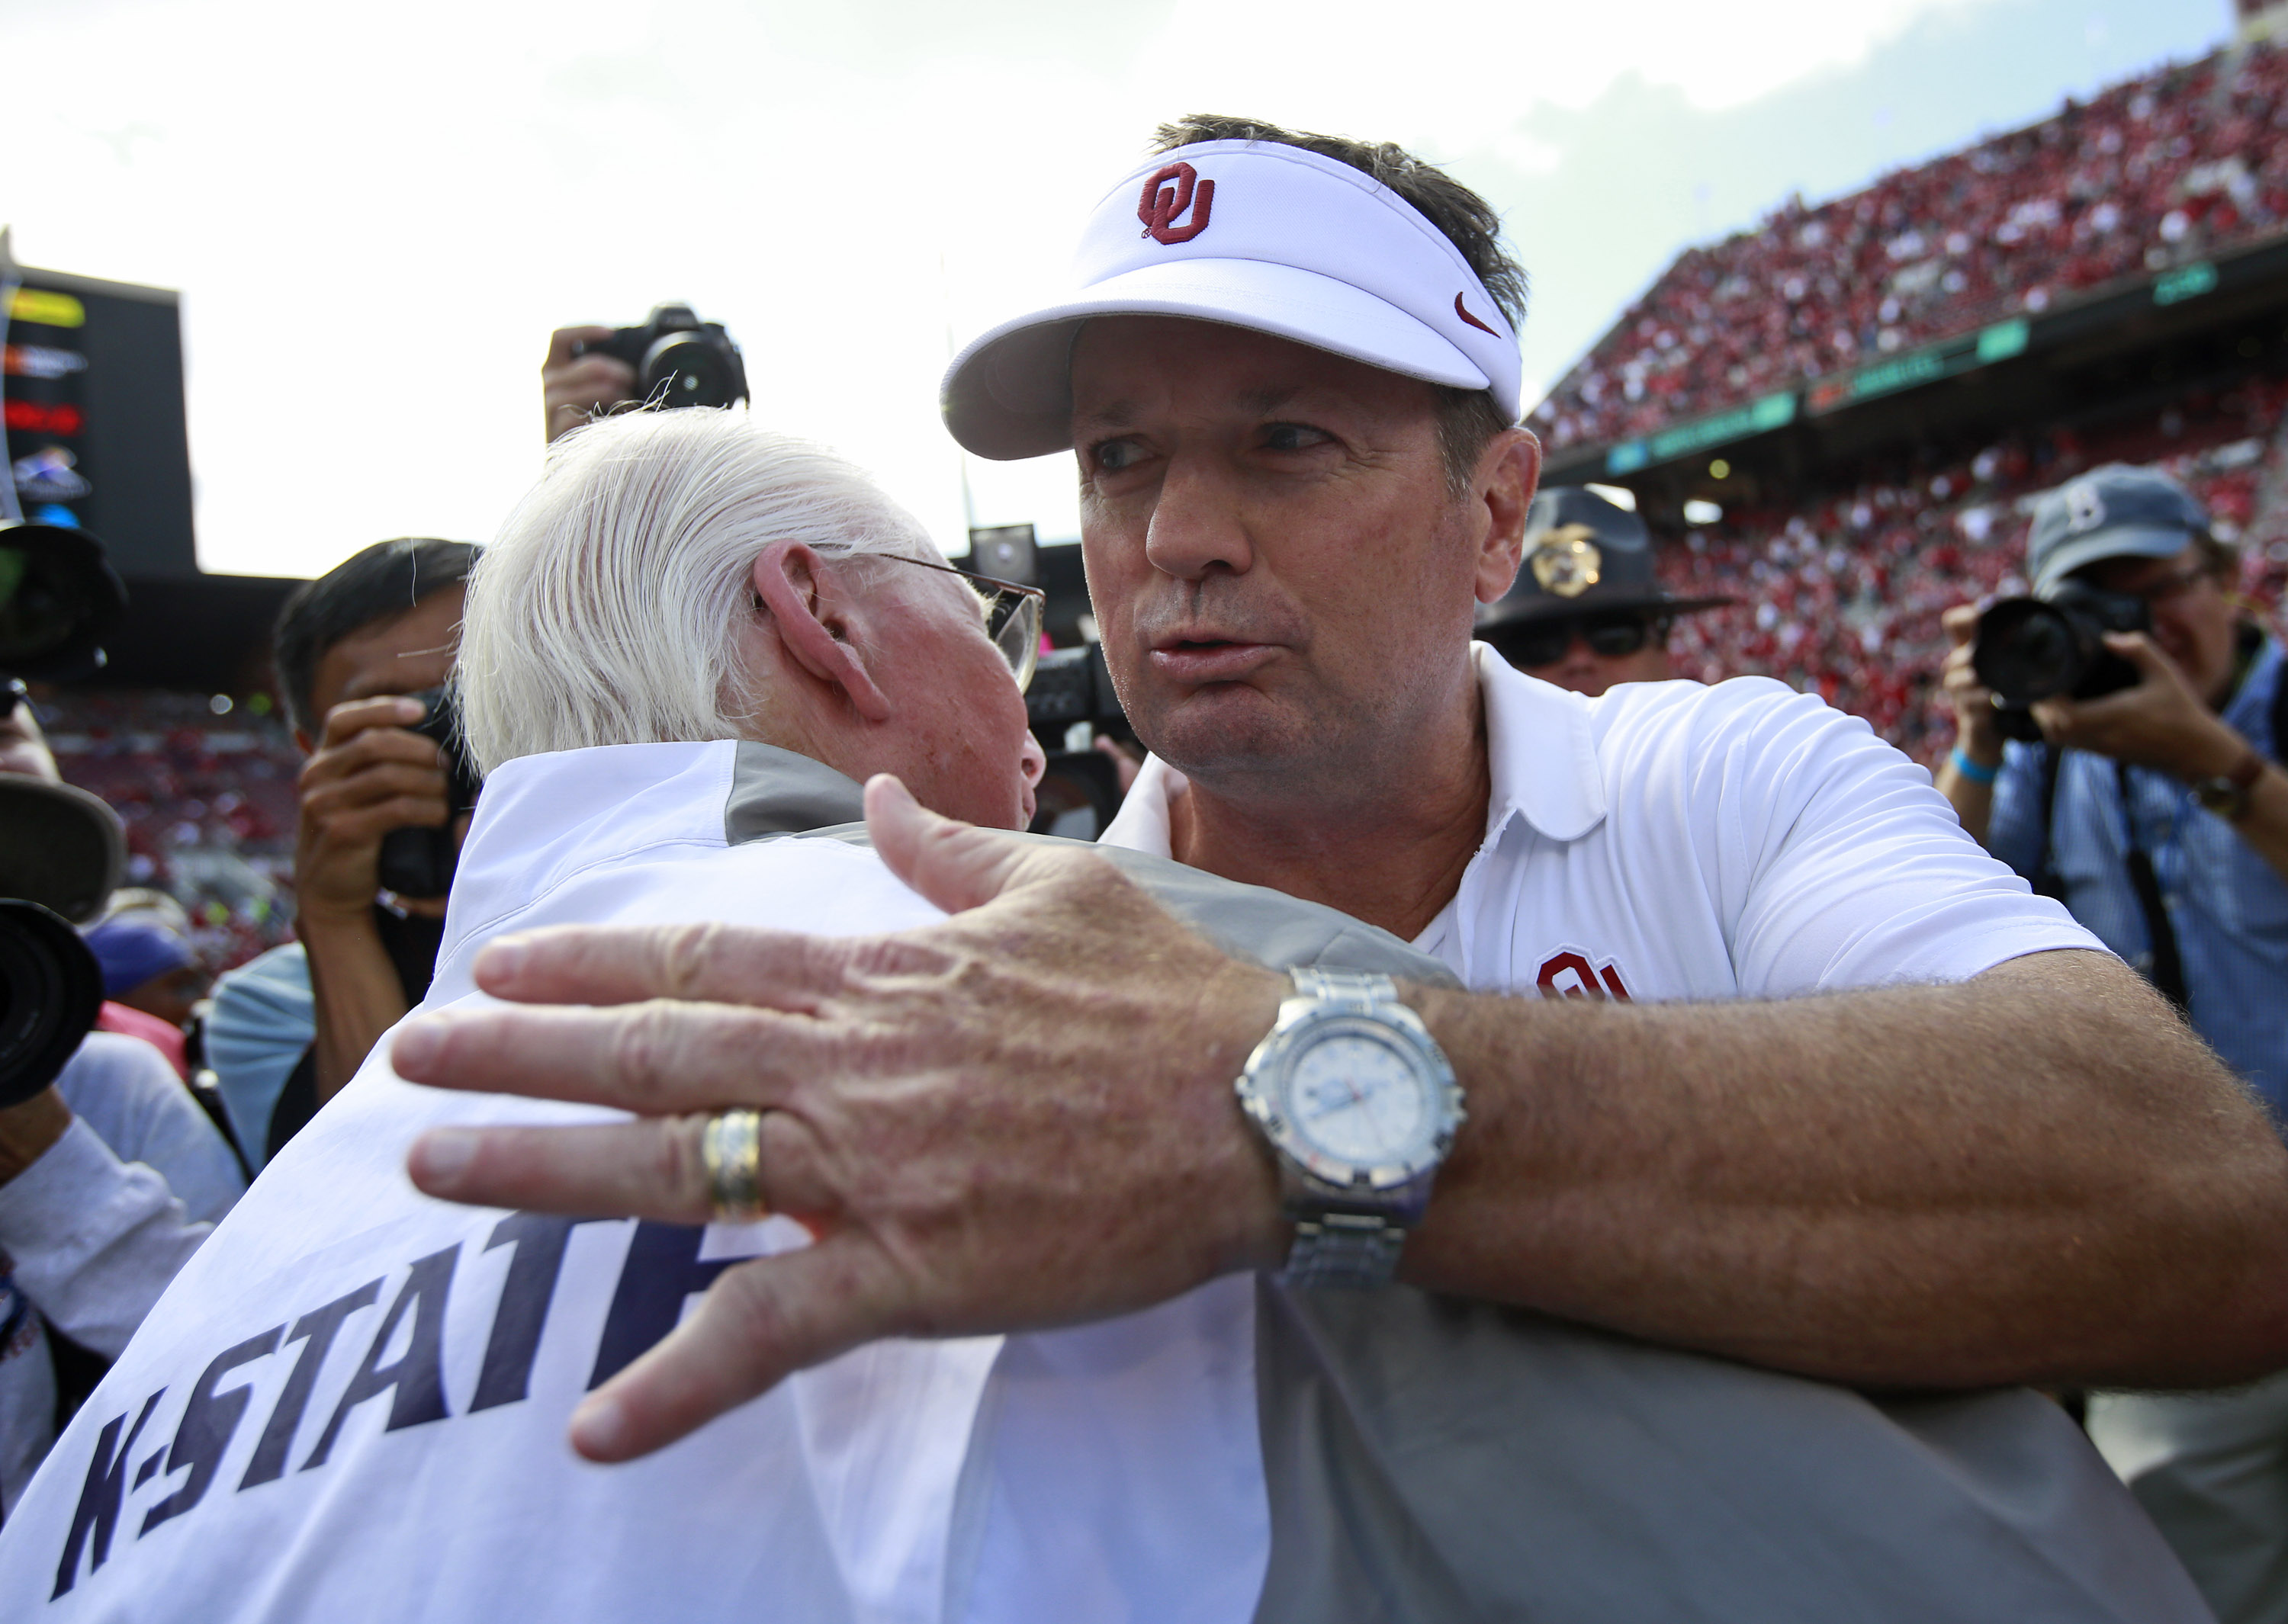 Who knew this would be the last time this would happen? Who knew Snyder would outlast Stoops?!